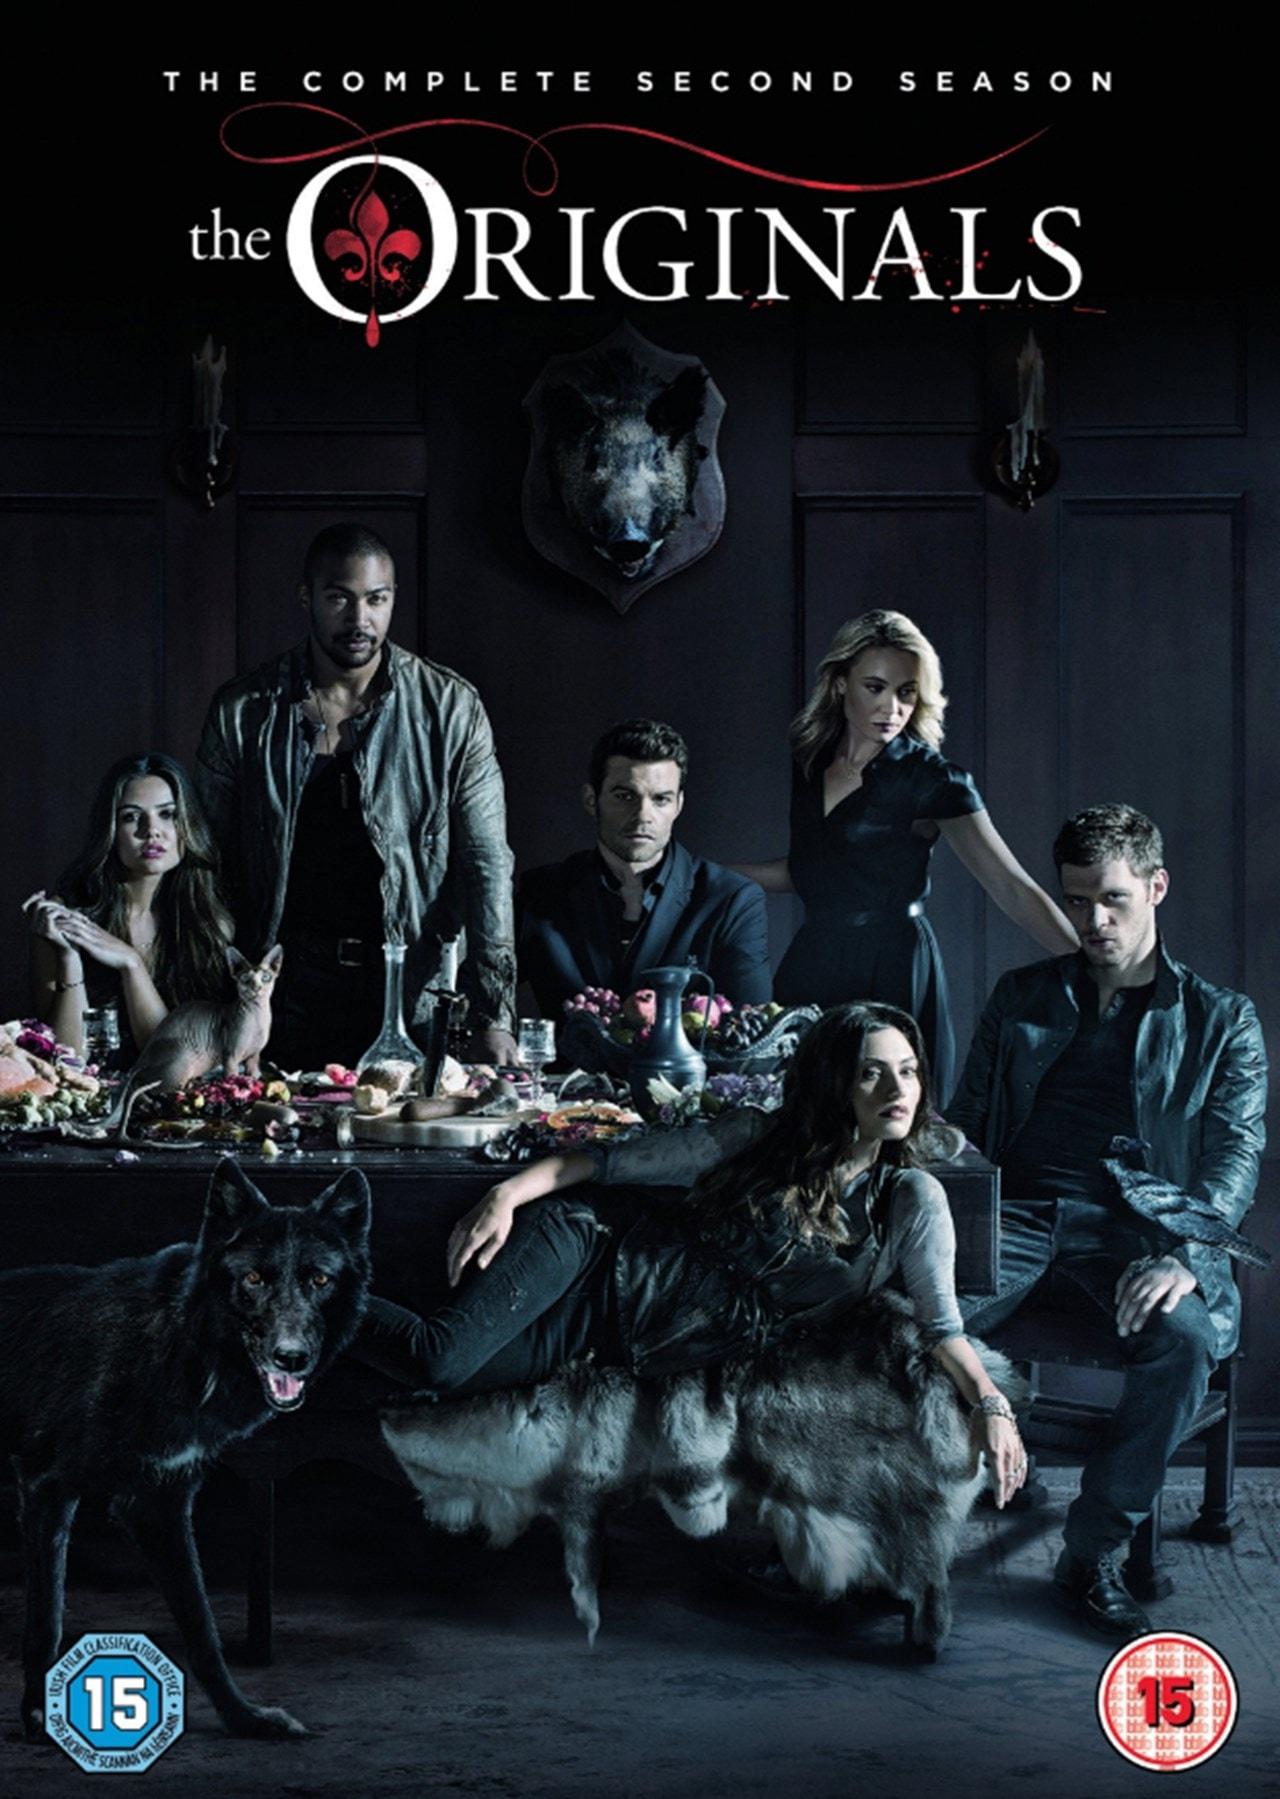 The Originals: The Complete Second Season - 1